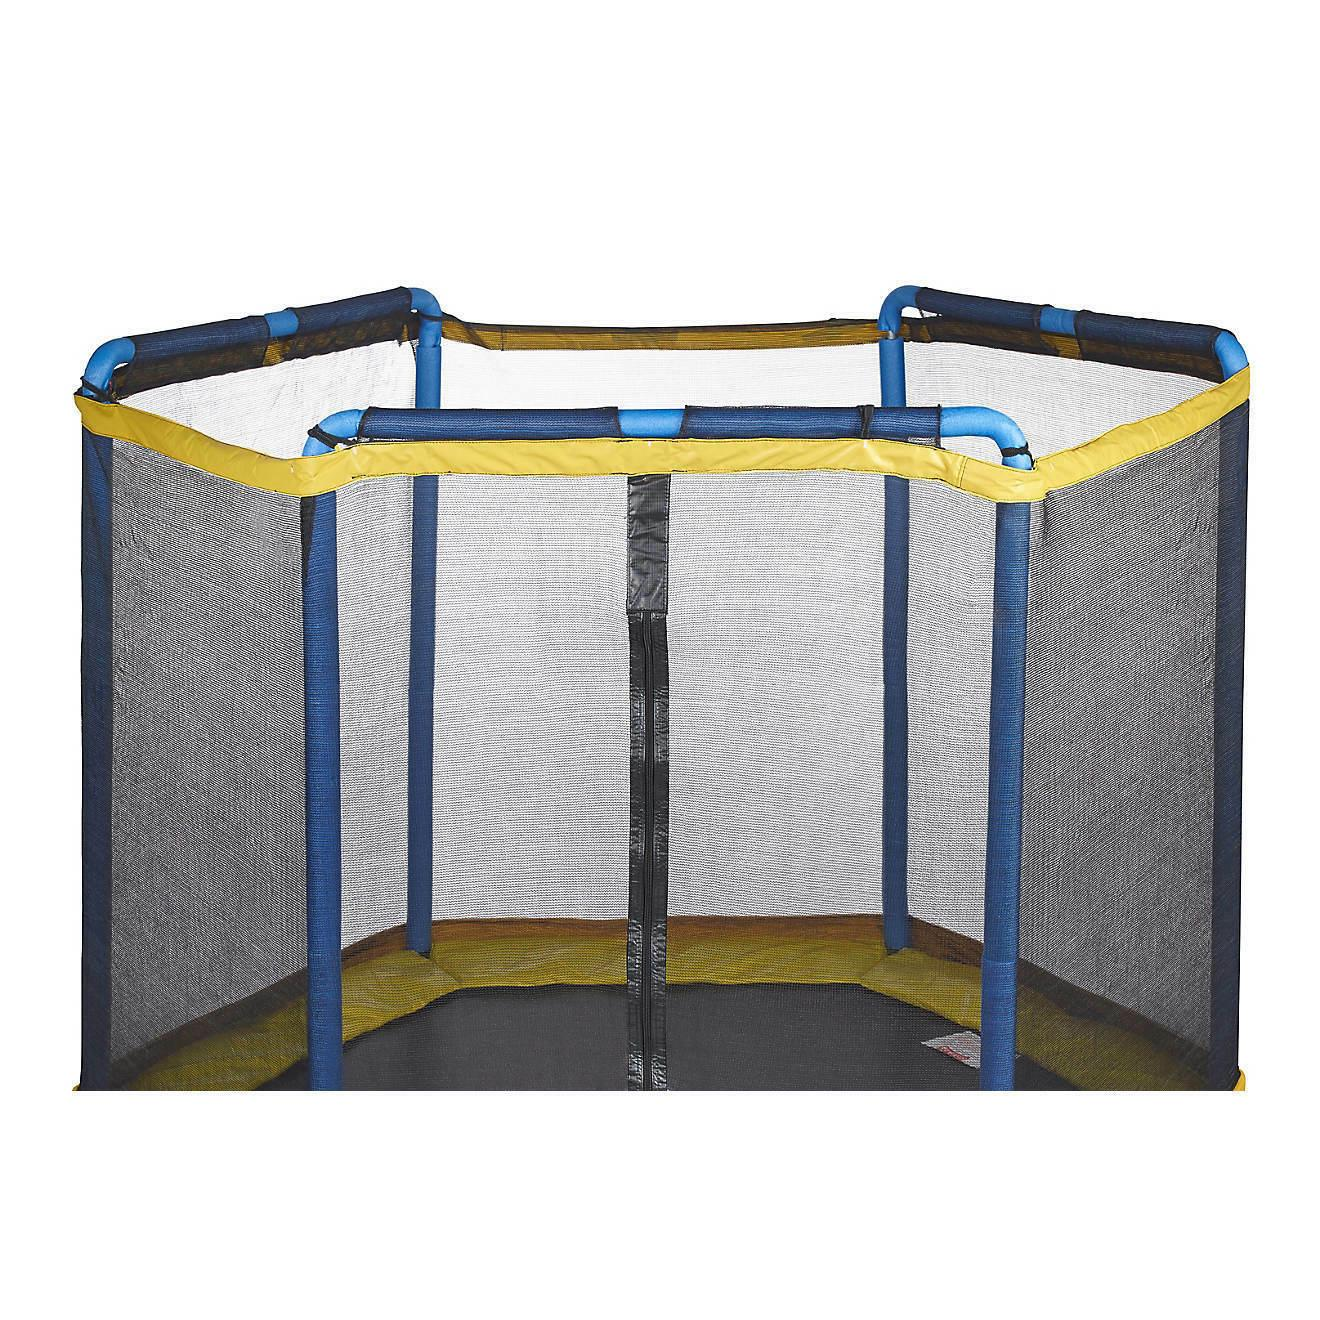 JumpZone ft First Trampoline Top Enclosure Kids